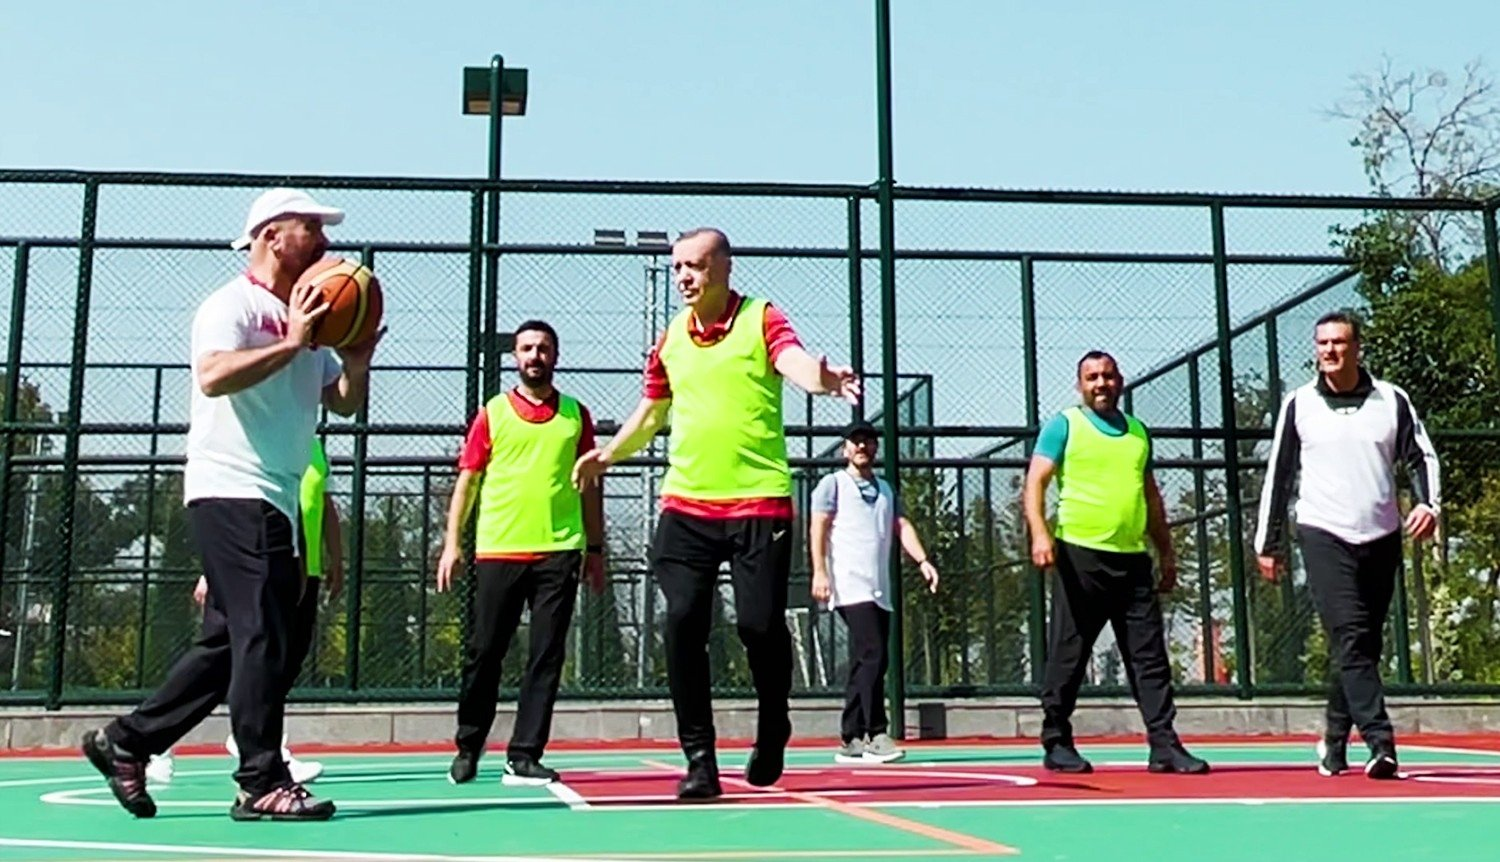 In this video screengrab President Recep Tayyip Erdoğan (C) plays basketball with several ministers and government officials at the Presidential Complex in Ankara, Turkey, Oct. 3, 2021.